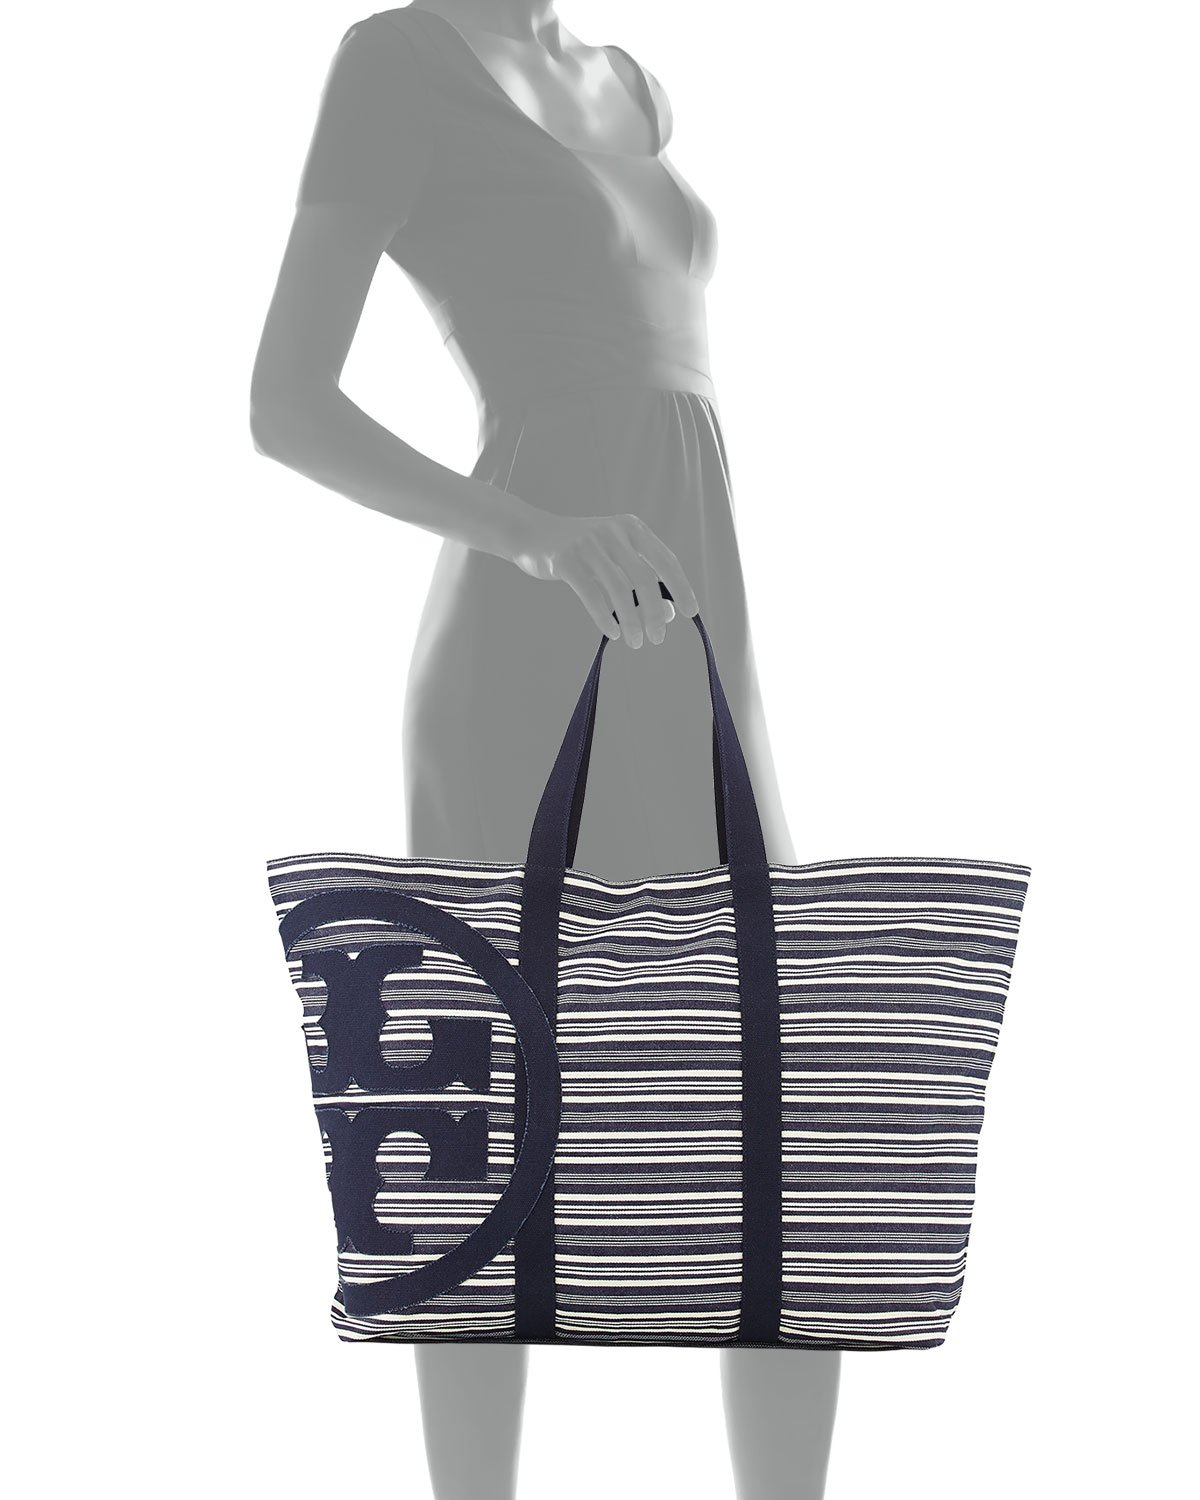 e84b69e550 Gallery. Previously sold at: Neiman Marcus · Women's Beach Bags